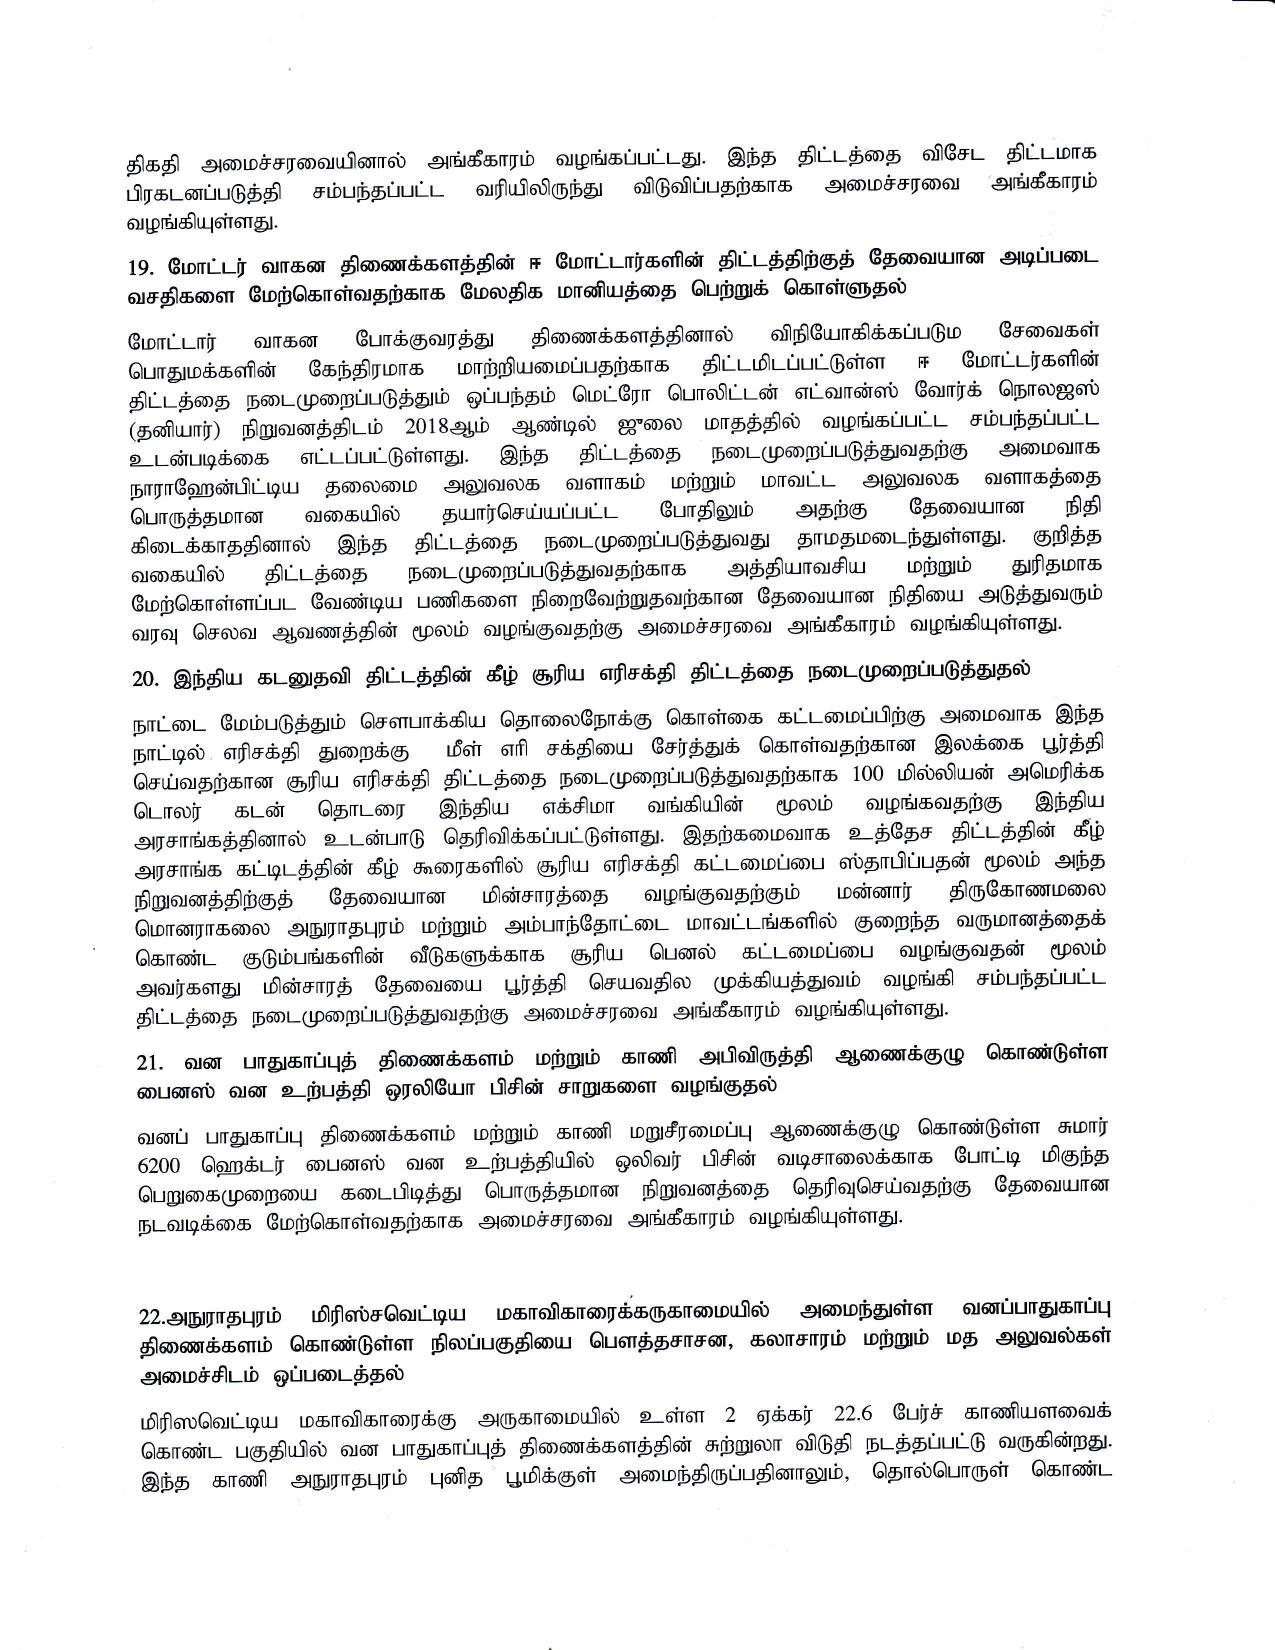 Tamil Cabinet 11.06.20 min page 007